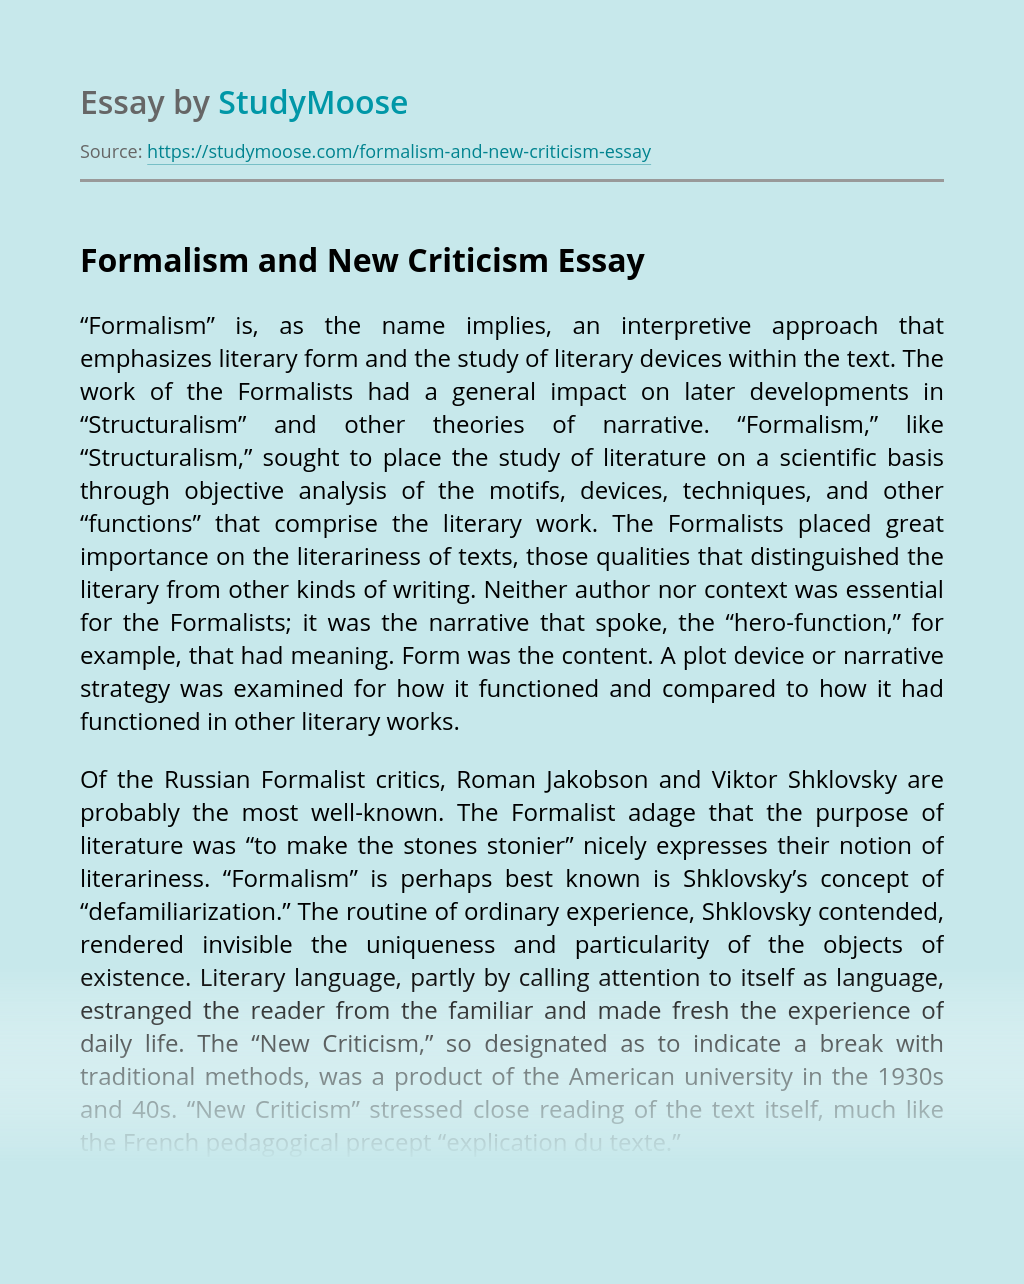 Formalism and New Criticism